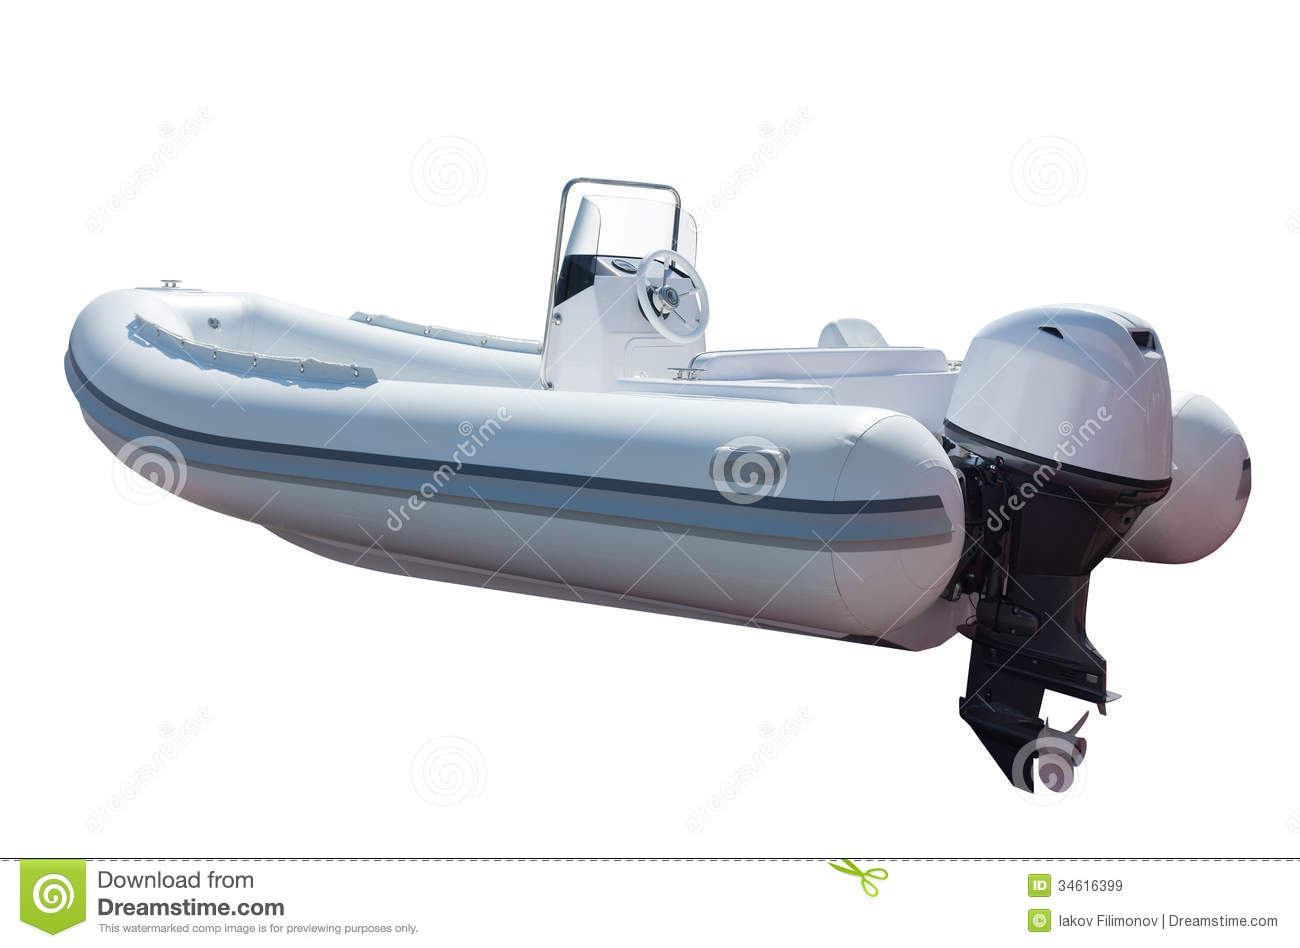 Motor boat with engine royalty free stock images image for Max motor dreams cost